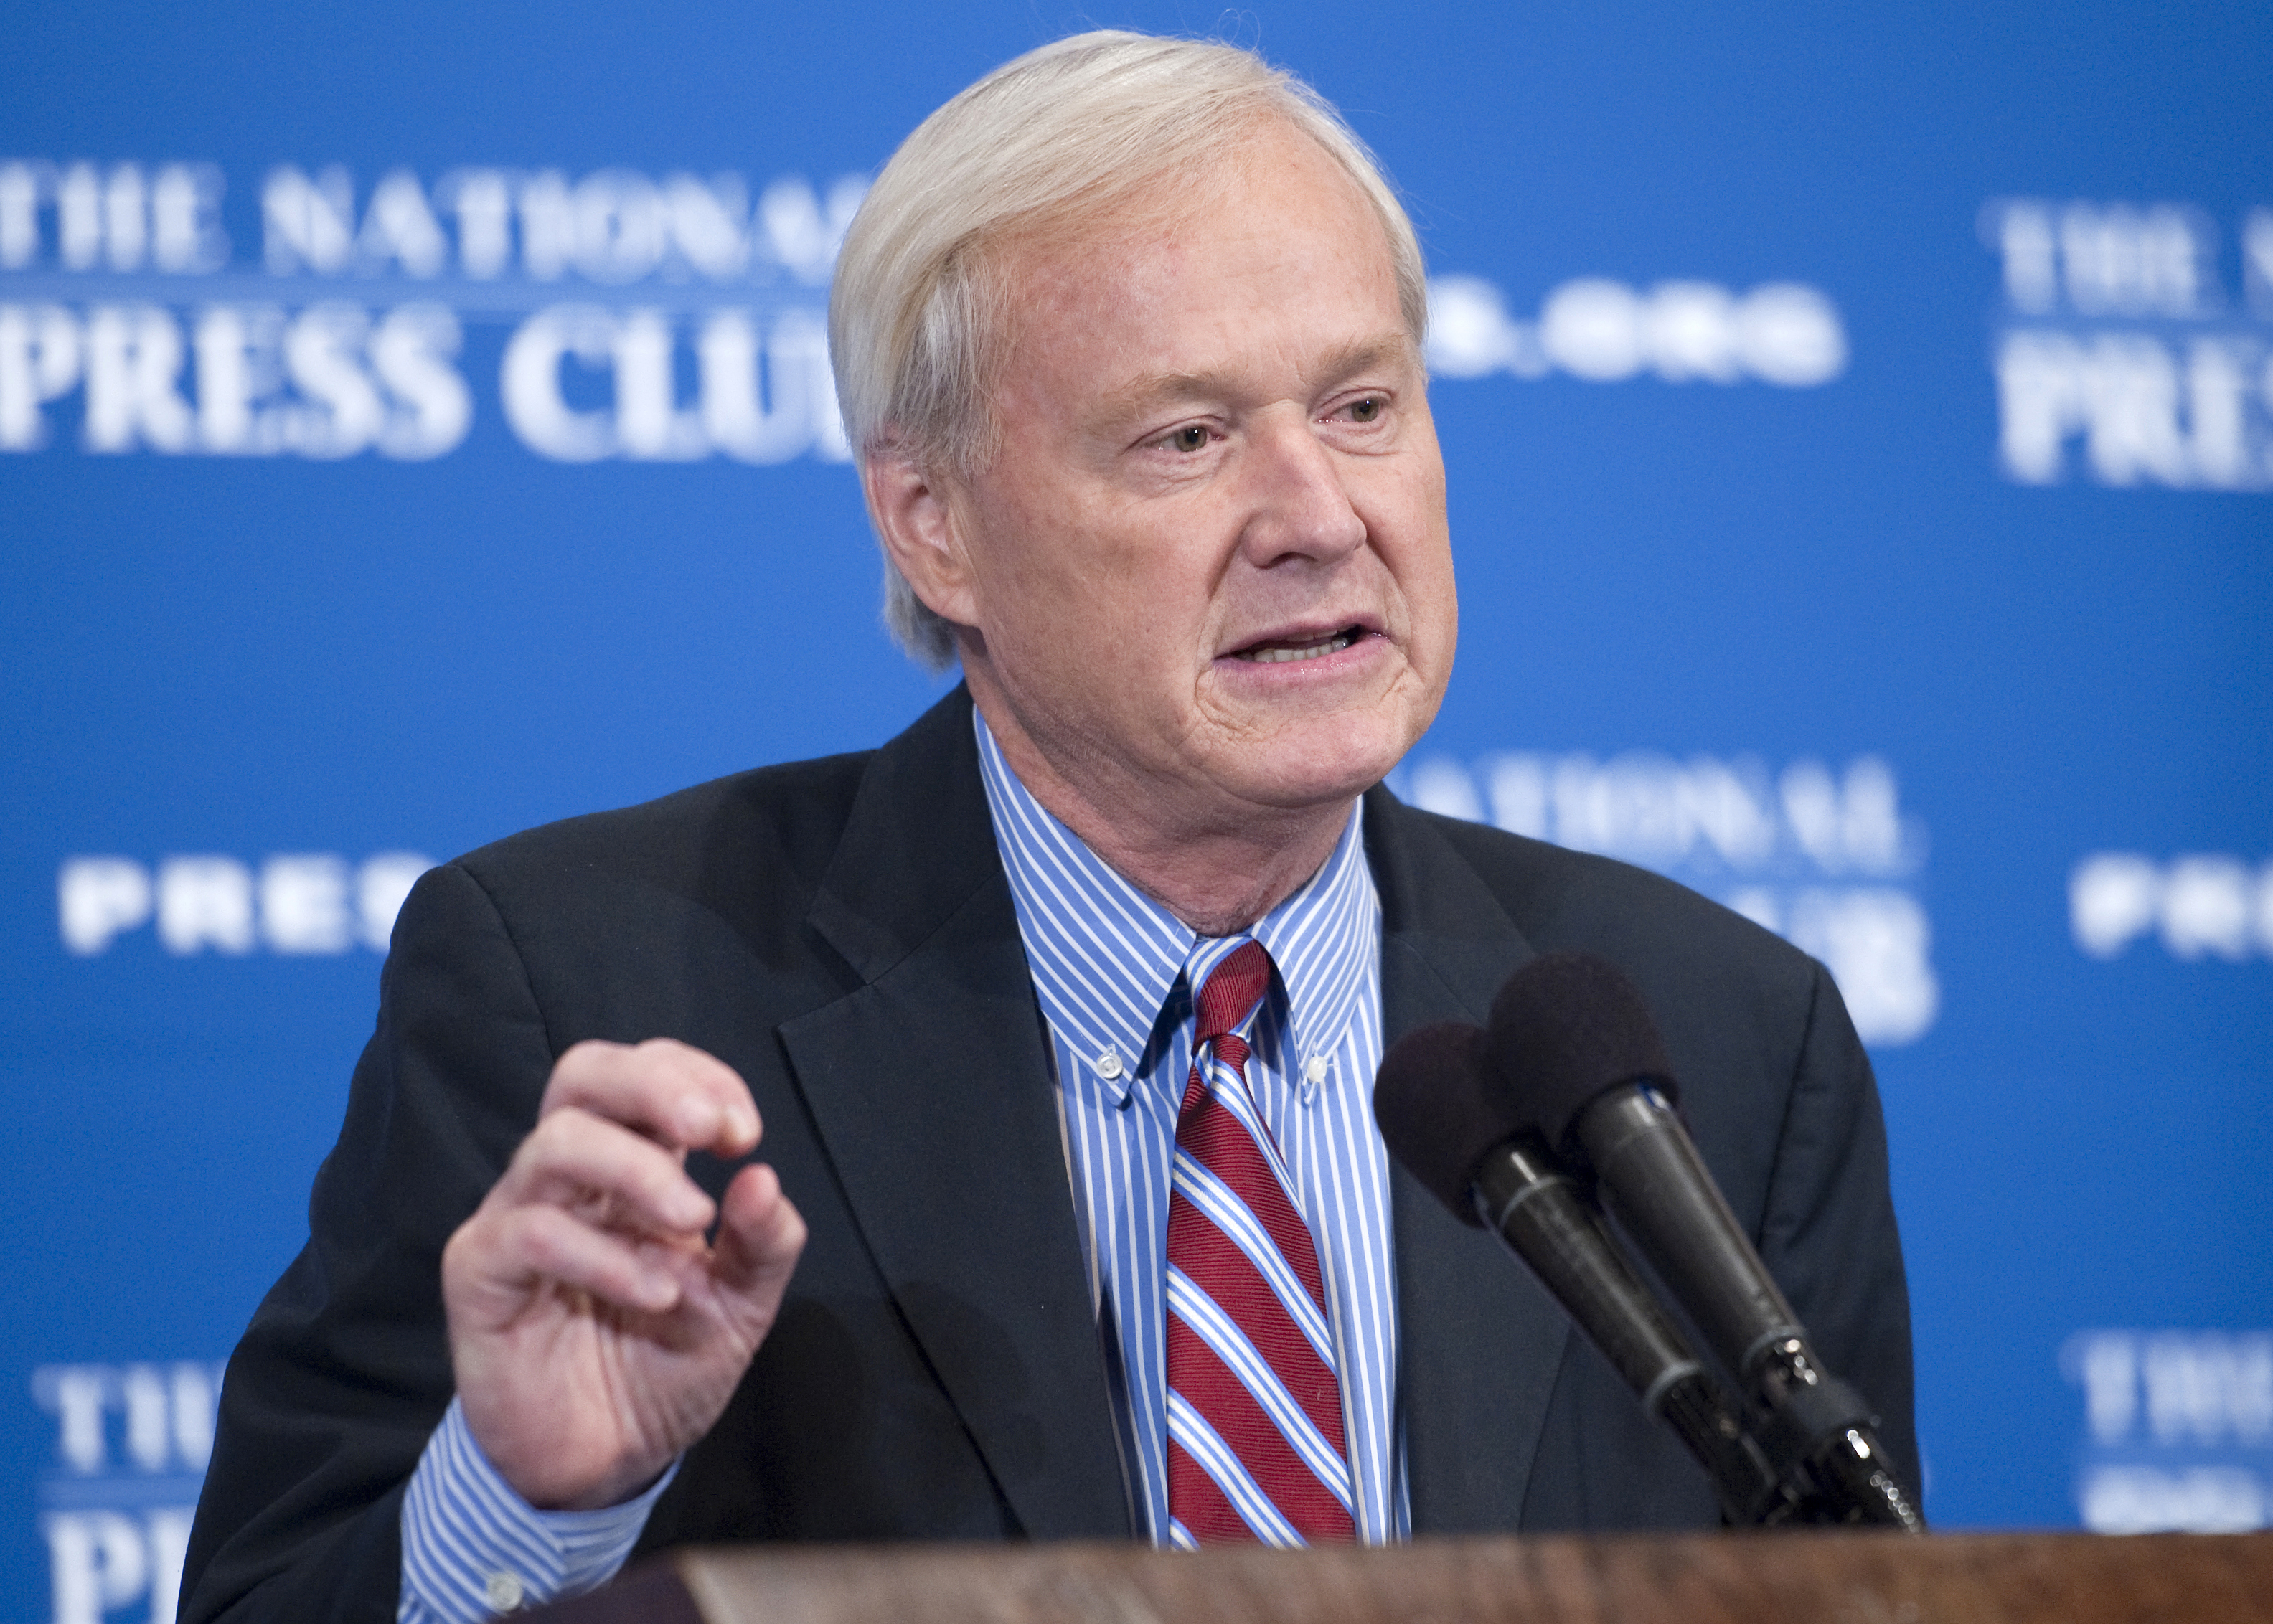 Chris-Matthews-apologizes-for-joking-about-'Cosby-pill'